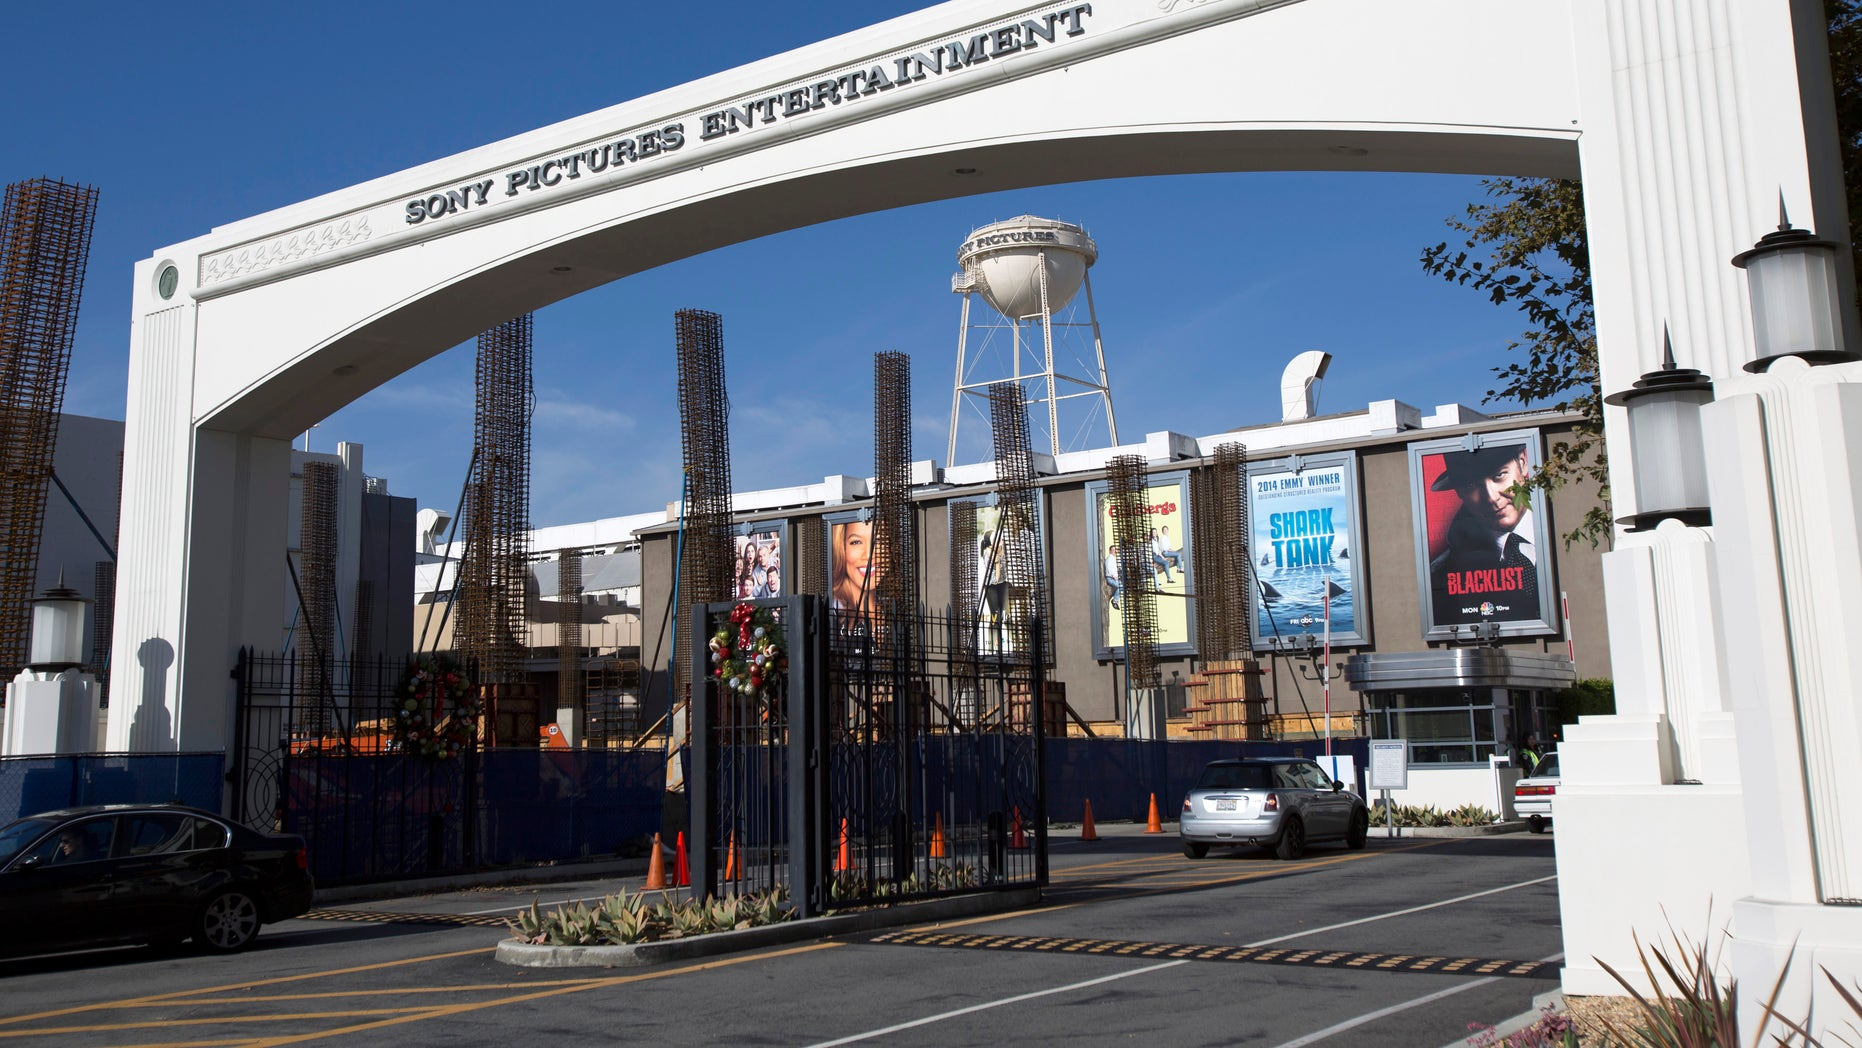 An entrance gate to Sony Pictures Studios is pictured in Culver City, California.